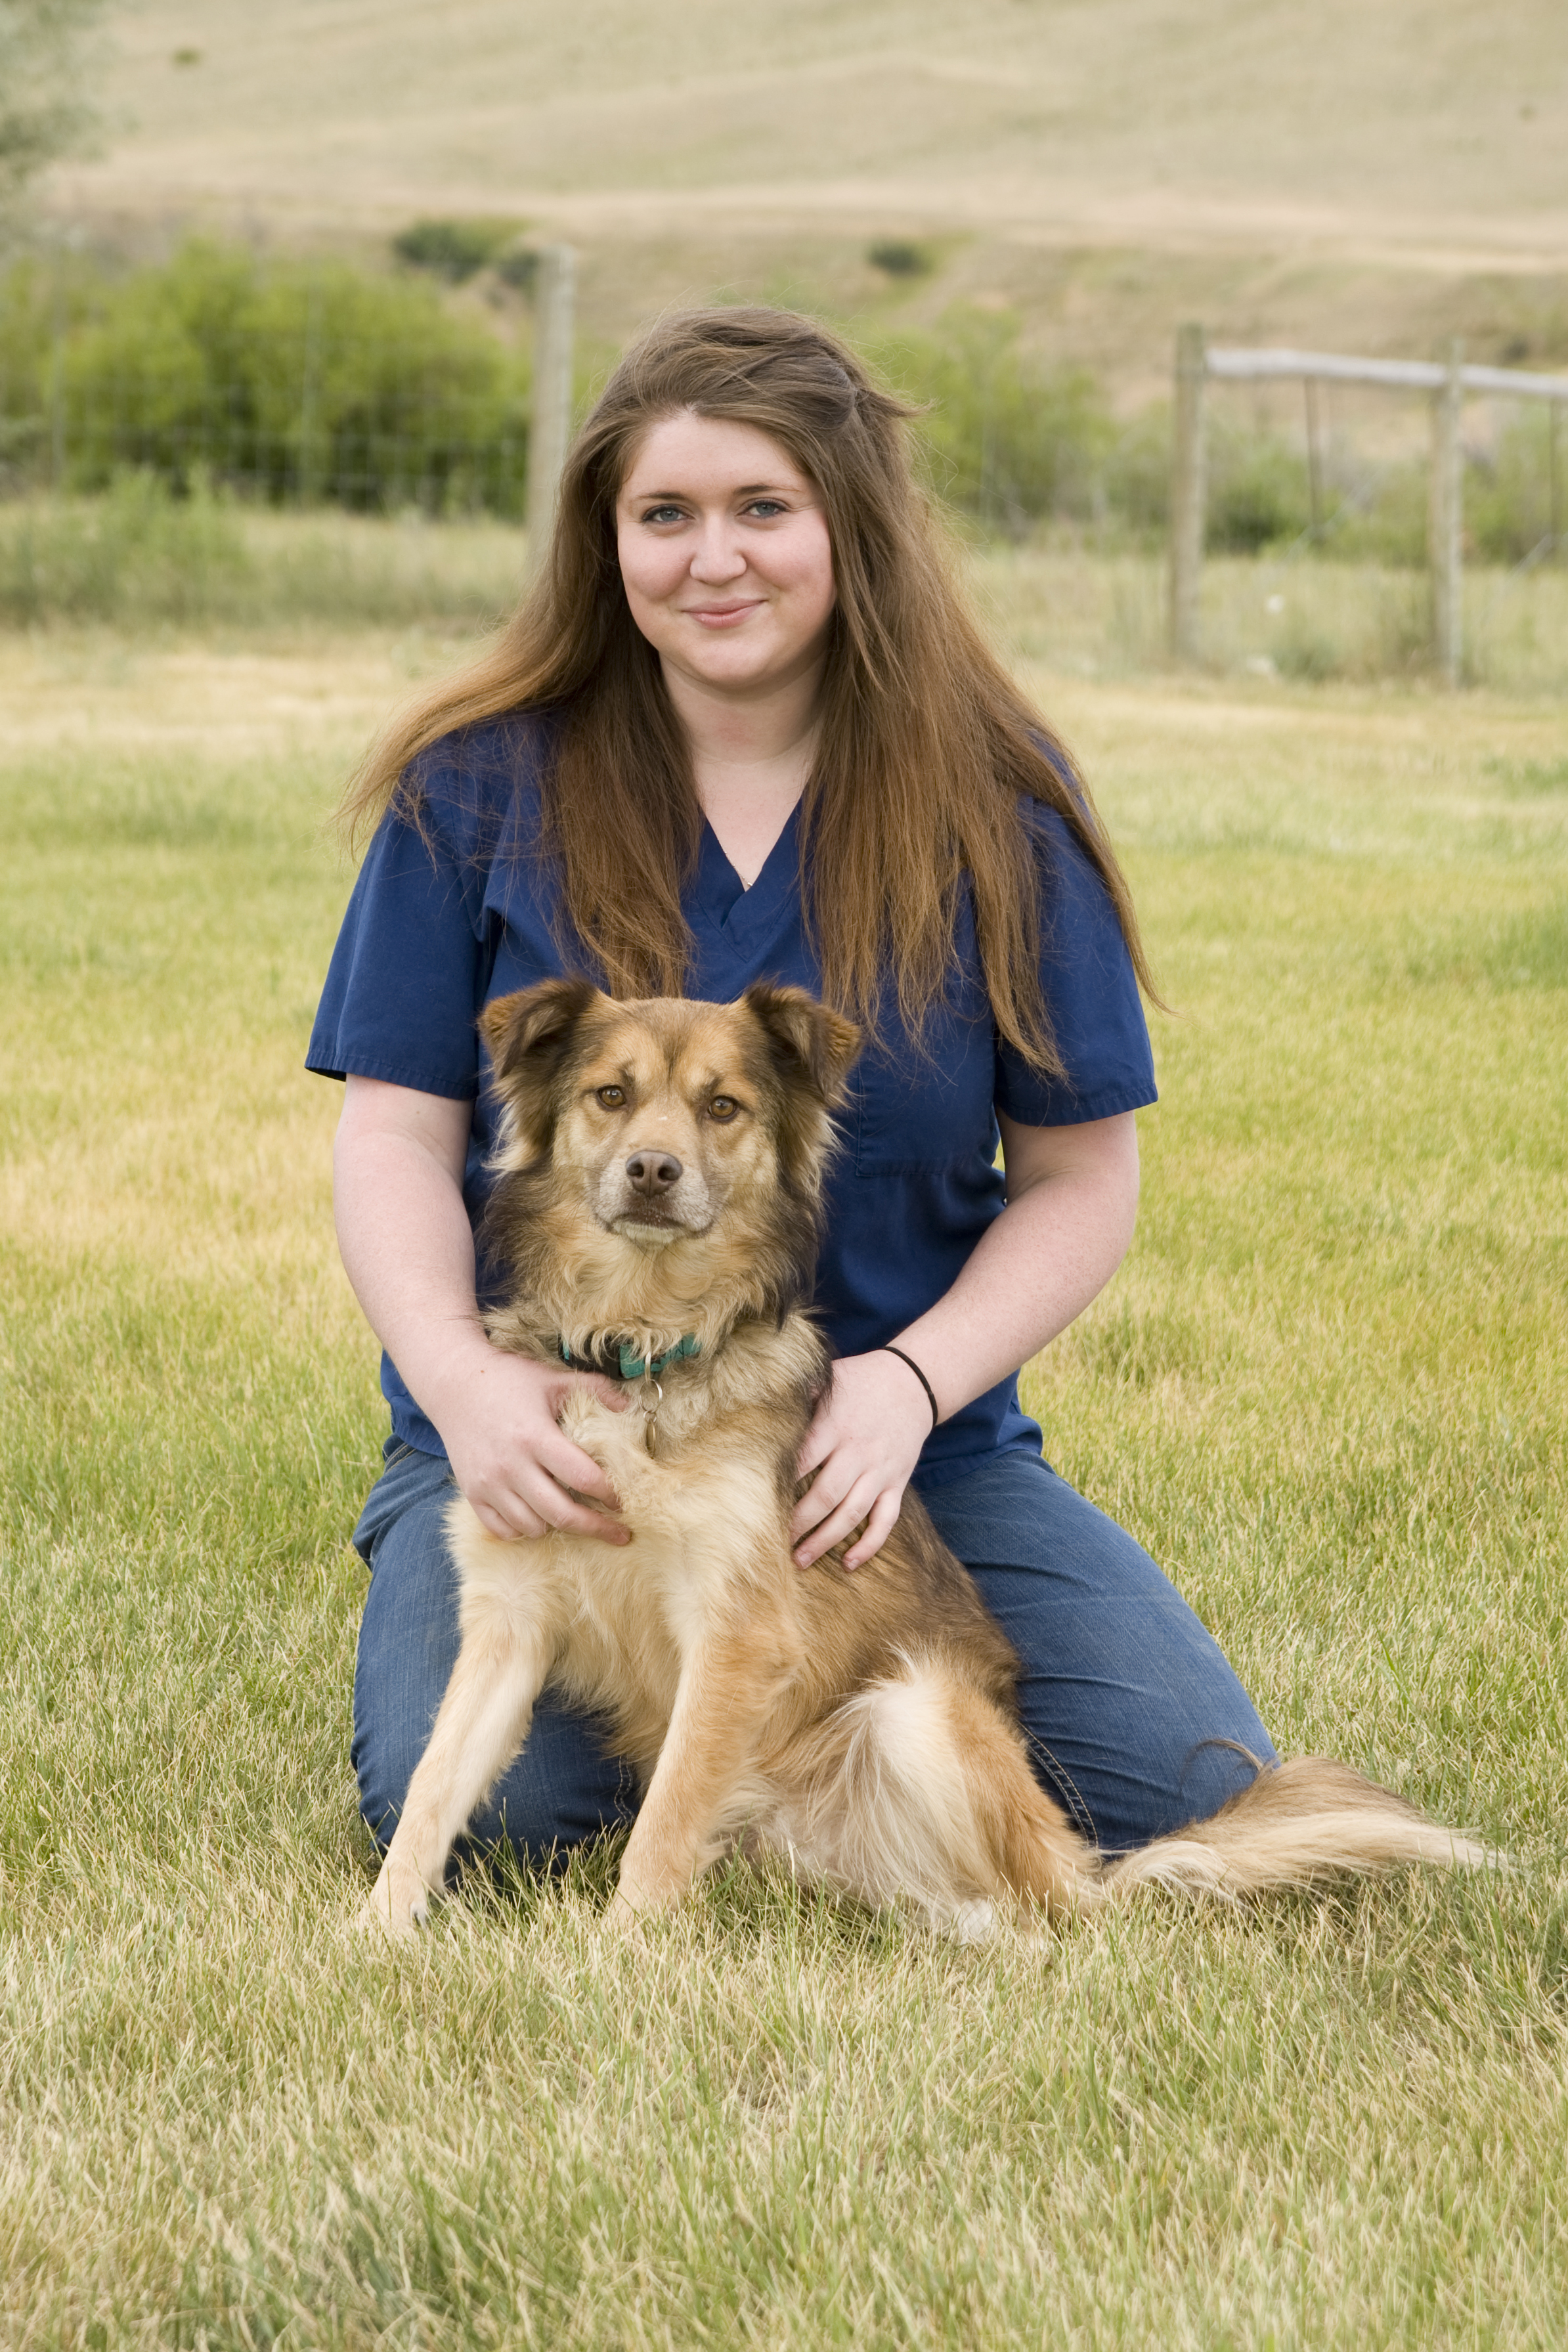 Jaycee Wood, CVA - Jaycee has been with CFVC since 2012, starting as receptionist and kennel assistant. She is now one of our full time Certified Veterinary Assistants. She grew up in the Deer Lodge Valley. She enjoys volunteering her time fostering and encouraging pet adoptions. She and her two children love any outdoor activity where their dogs (Callie Jo & Benny) can tag along. They enjoy photography, camping and hiking.